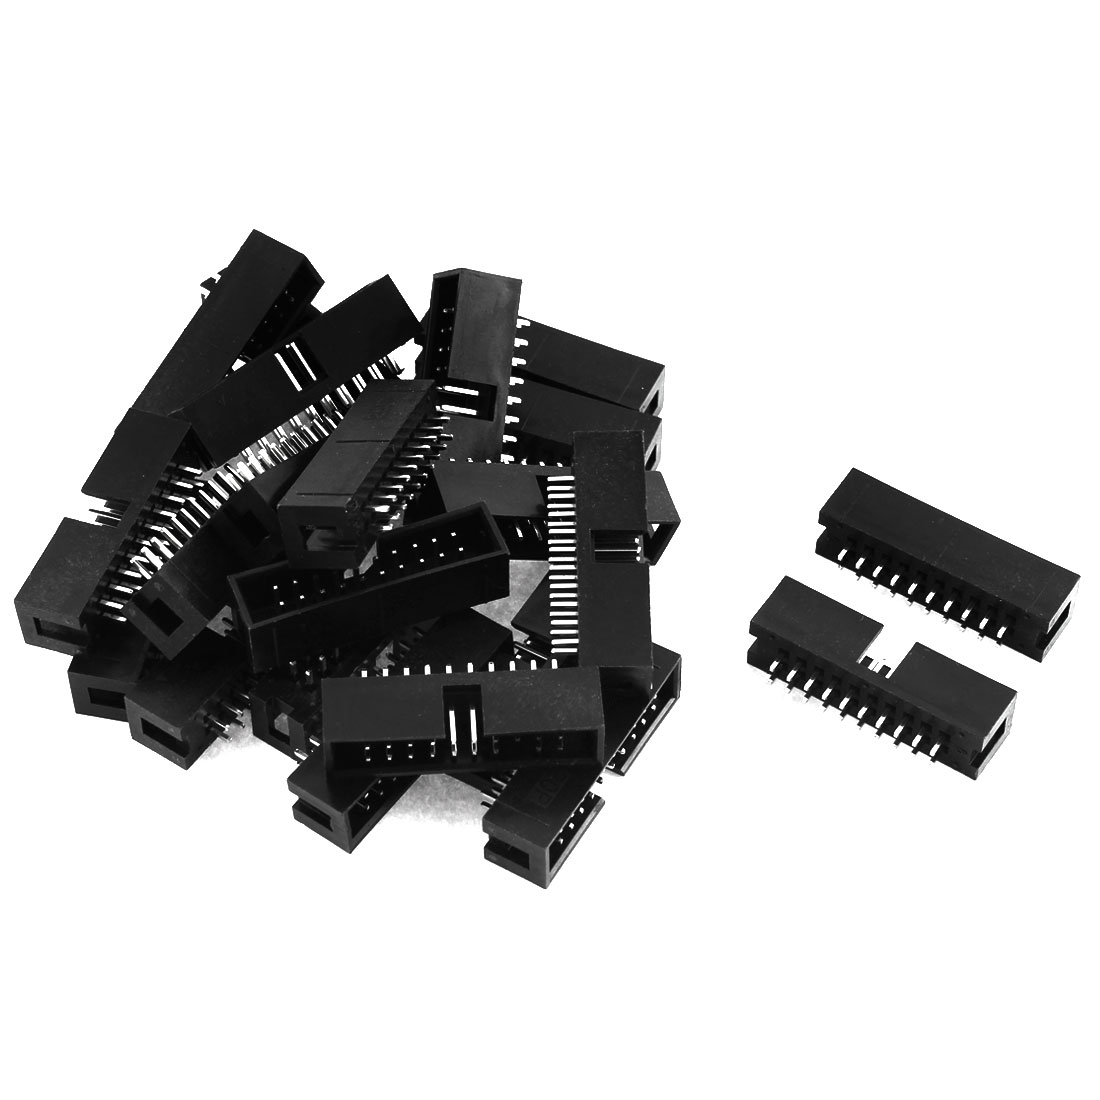 22pcs 2x10 20-Pin 2.54mm Pitch Straight Box Header Connector IDC Male Sockets